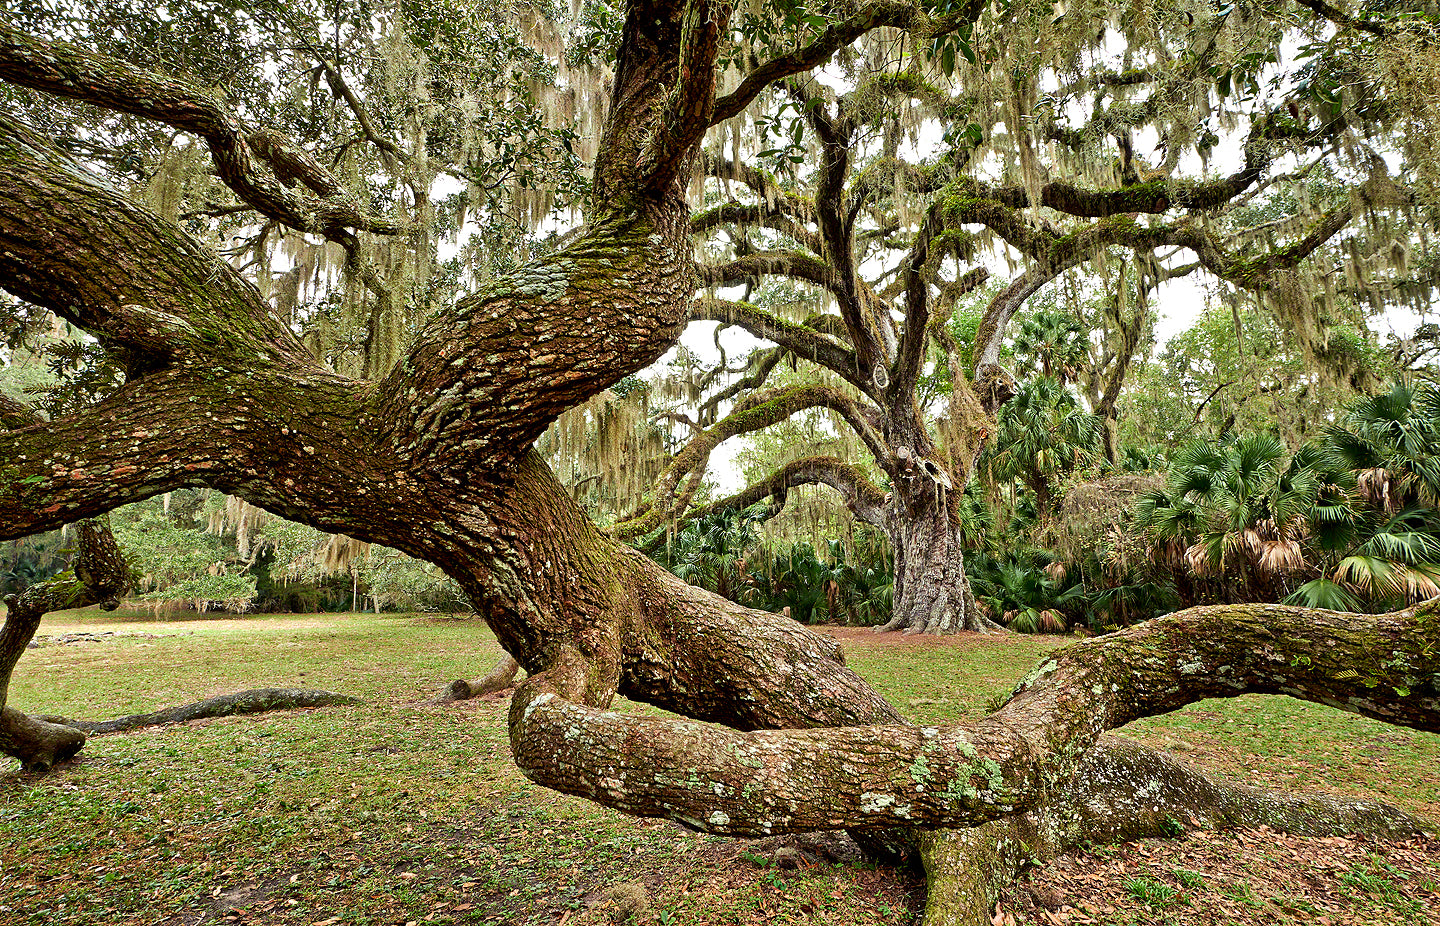 A photo of the fairchild oak tree